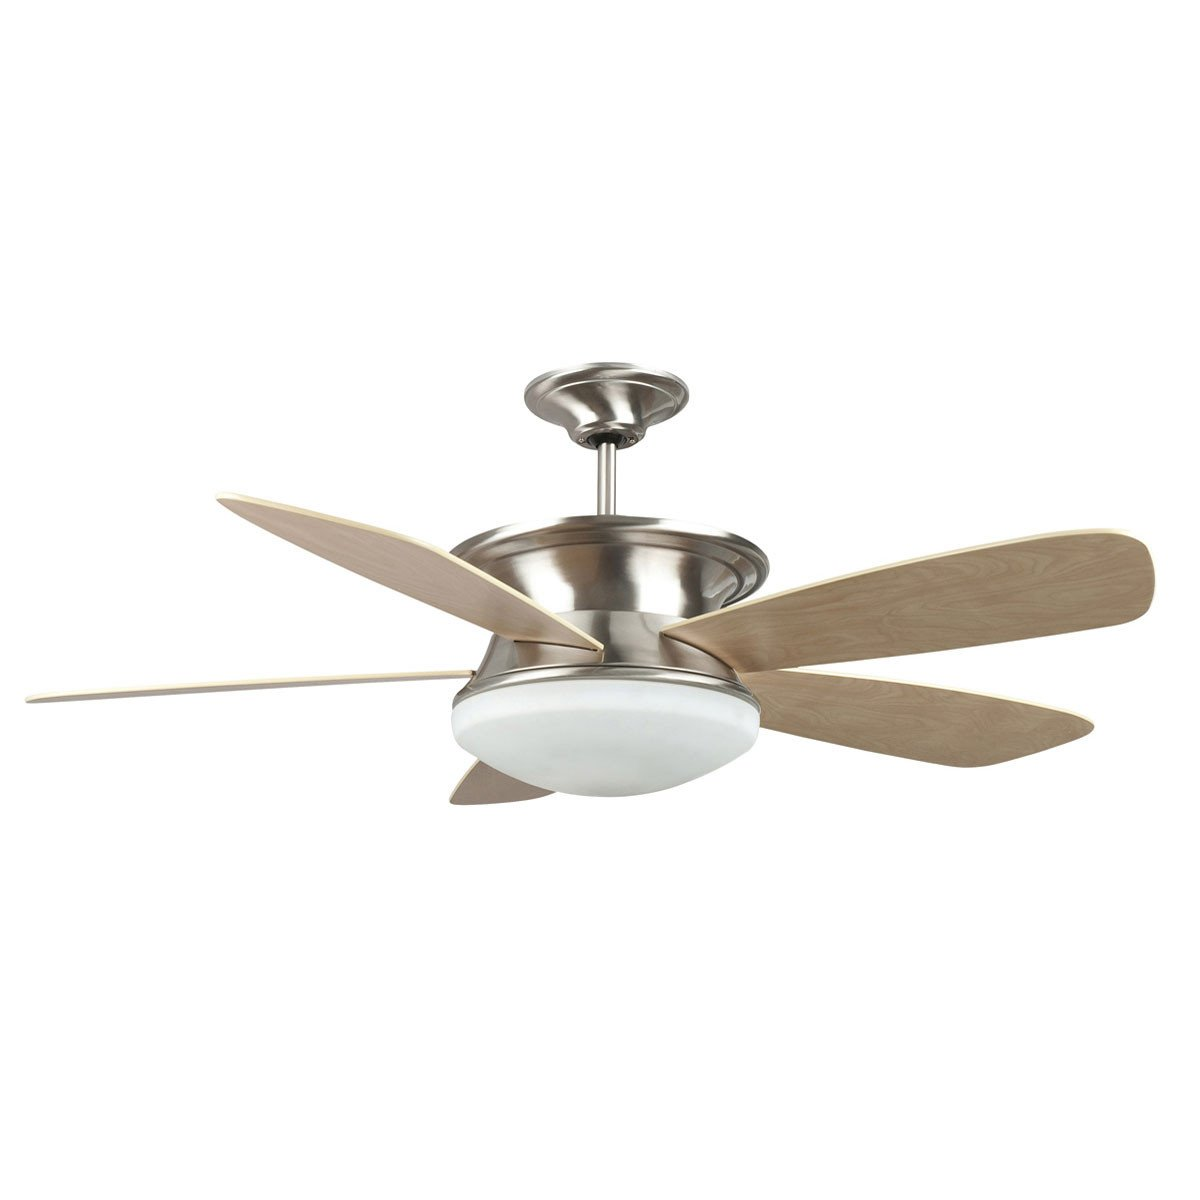 download fans metal oak stainless brushed steel ceiling fan kiss ceilings